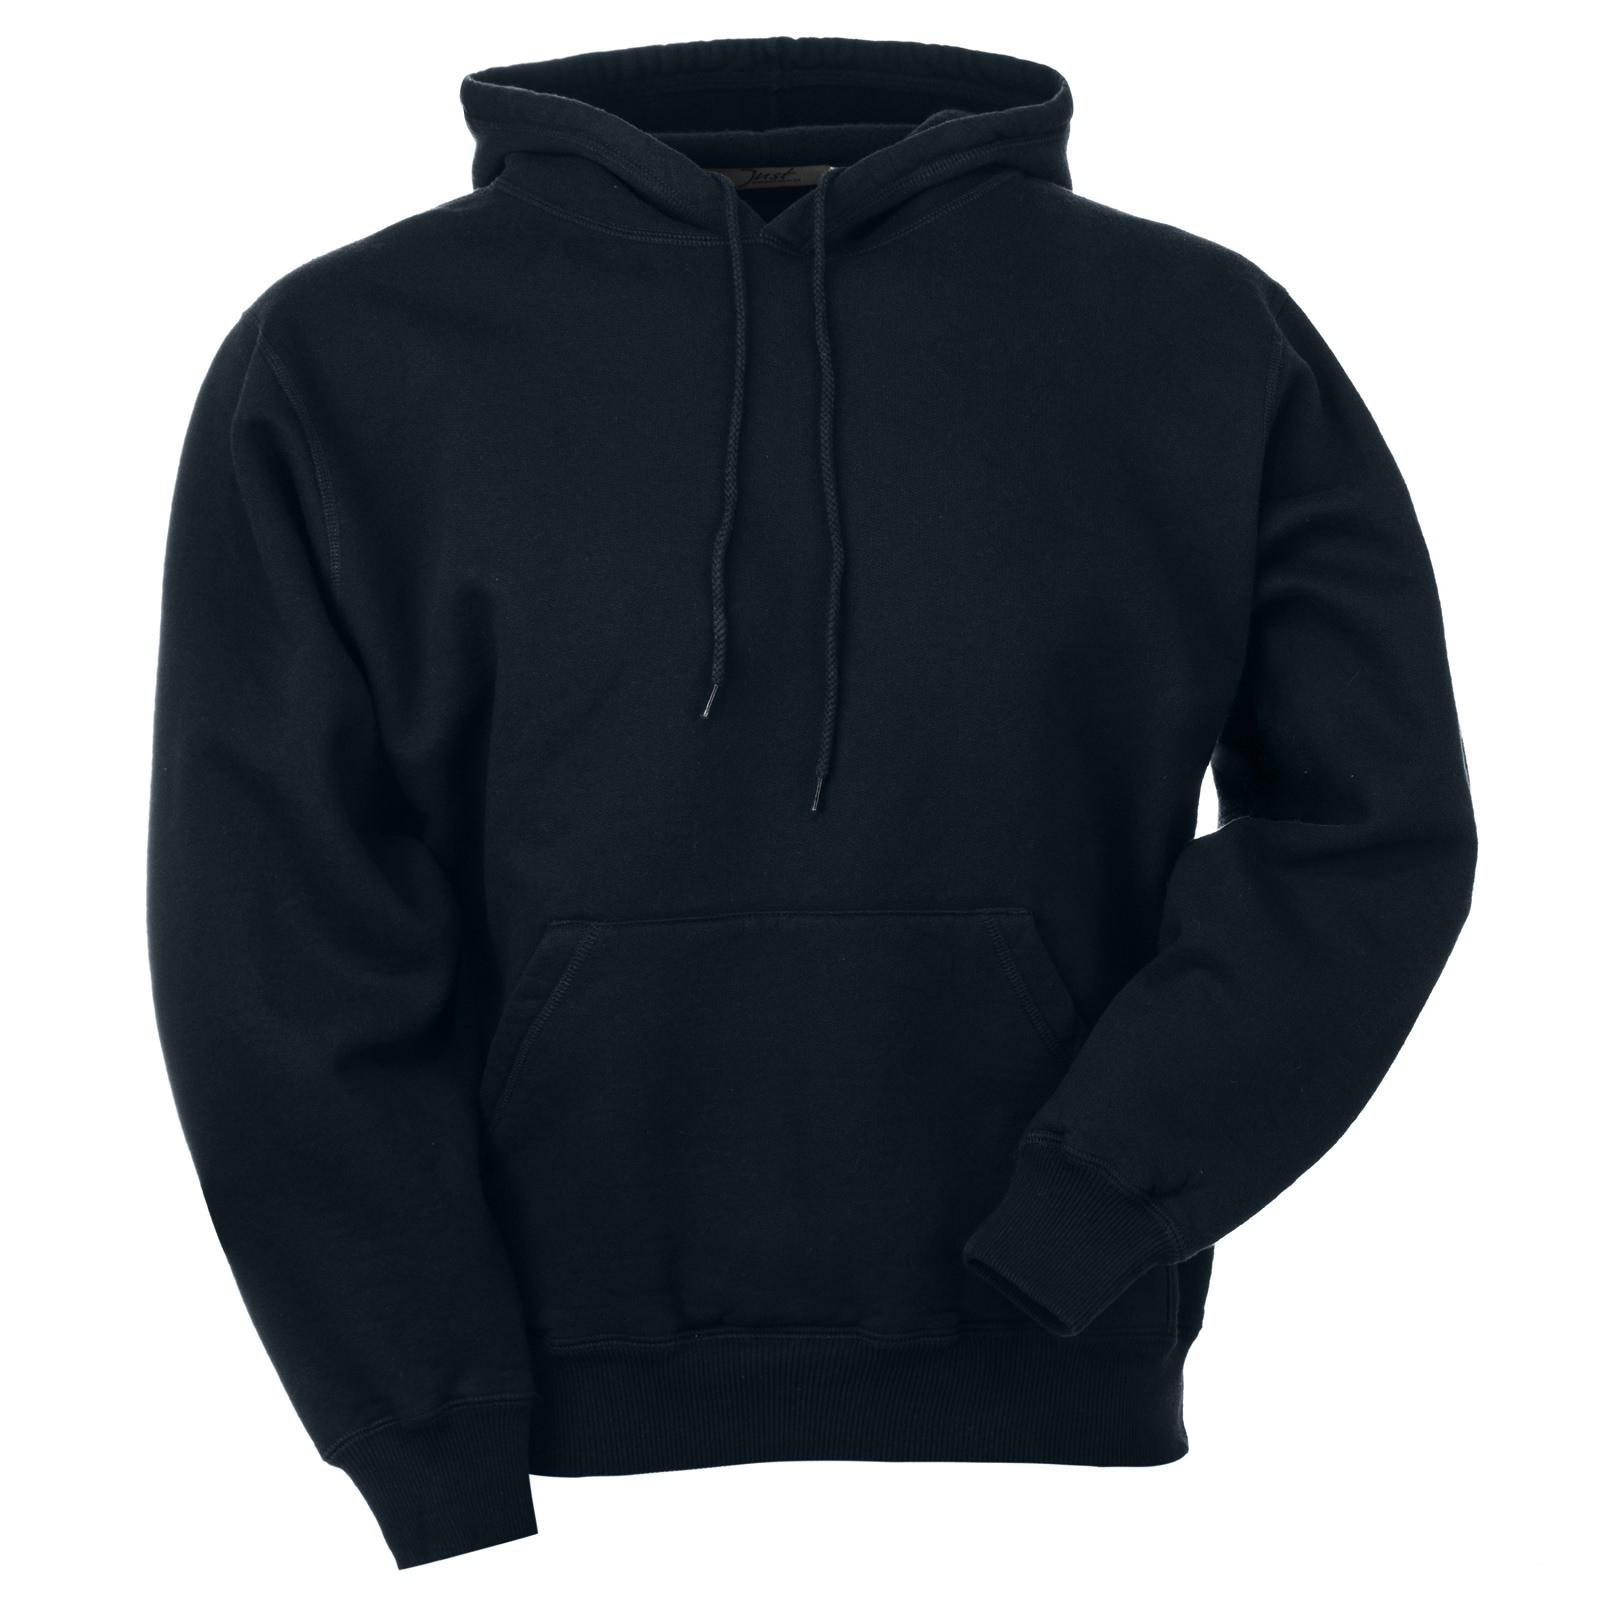 Hooded Pullover Dark Navy 100% Cotton